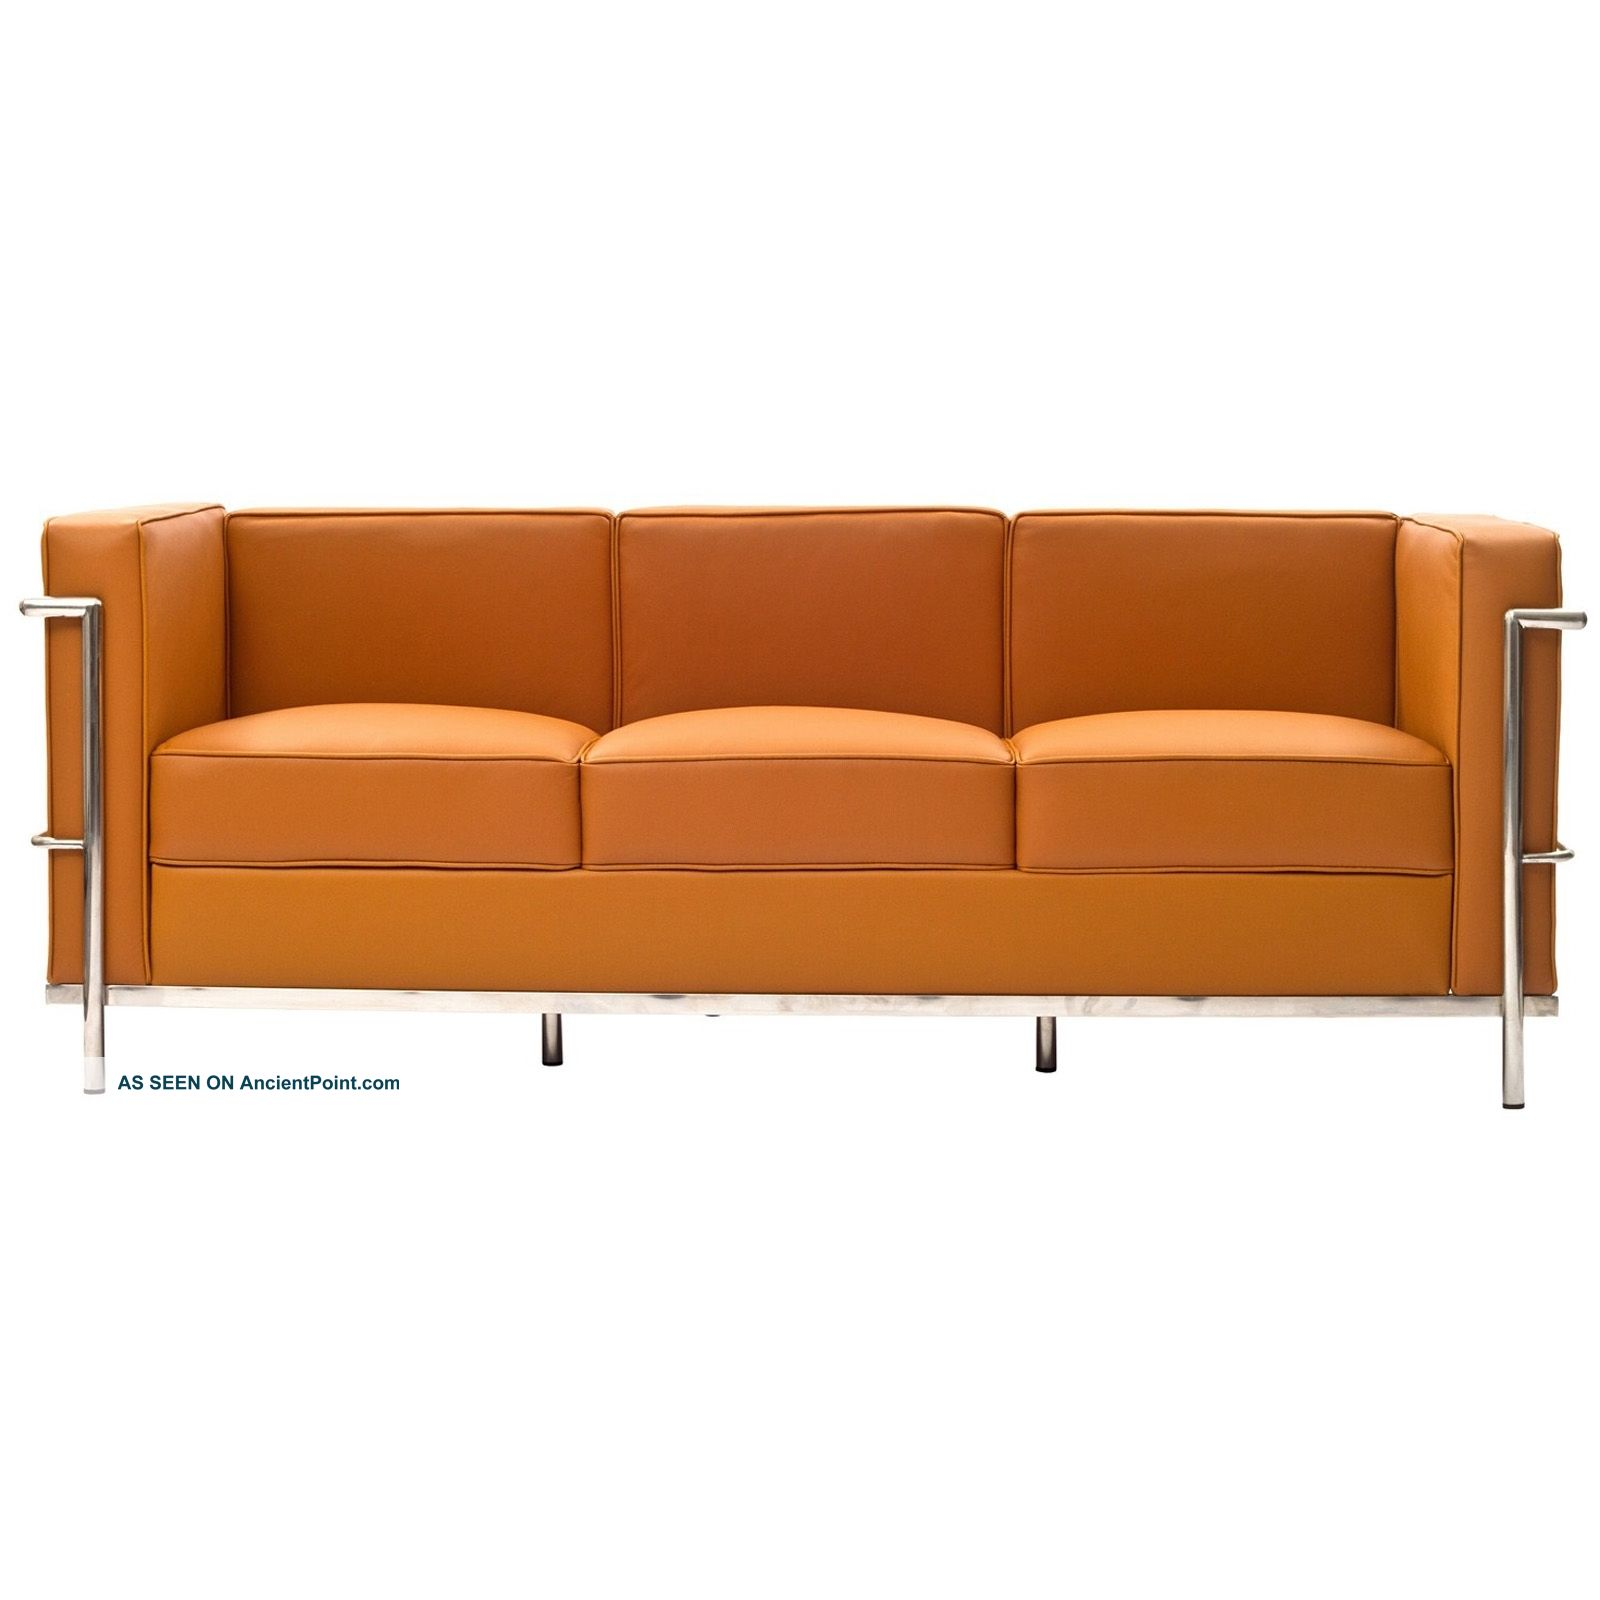 Mid Century Modern Wooden Tapered additionally Antique SOPHISTICATED CHIC FRENCH LXVI SOFA ORIGINAL PATINA additionally Native American Rustic Furniture besides Ebay Mission Style Leather Furniture as well 94265 Modern le corbusier sofa in black white red or tan leather new couch. on arts and crafts style couch